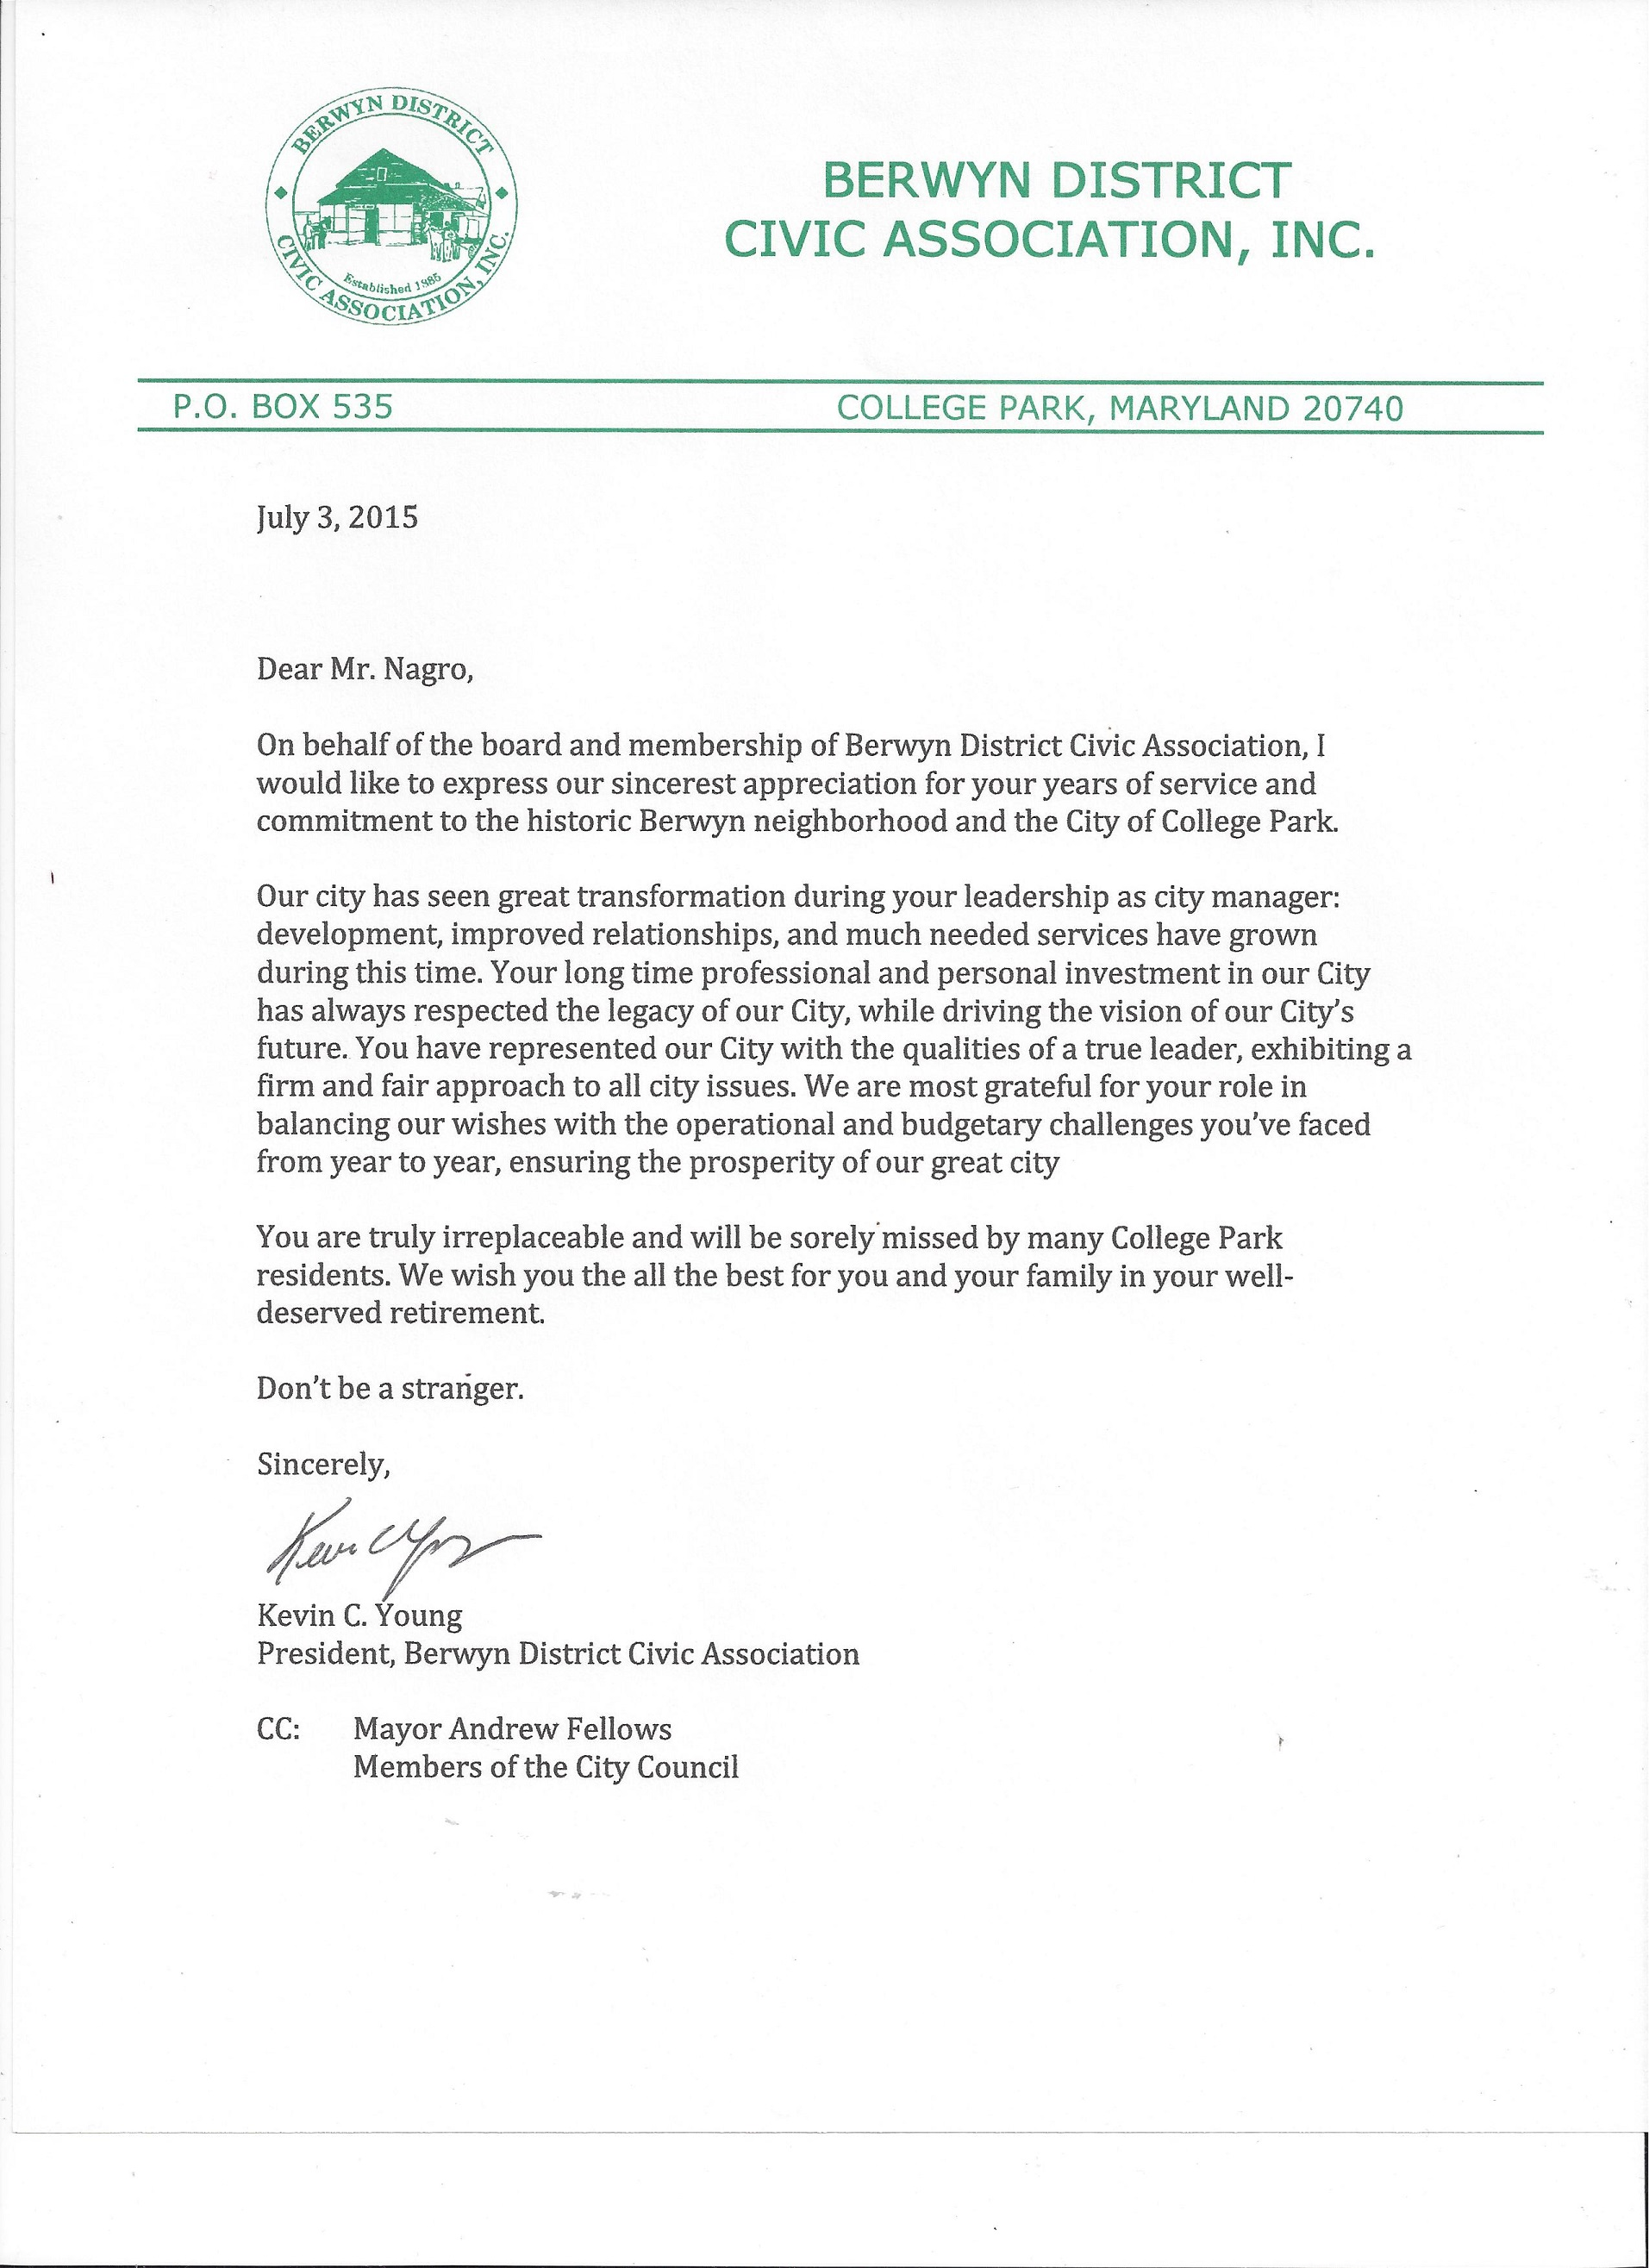 Advocacy Letters – Community Service Letter